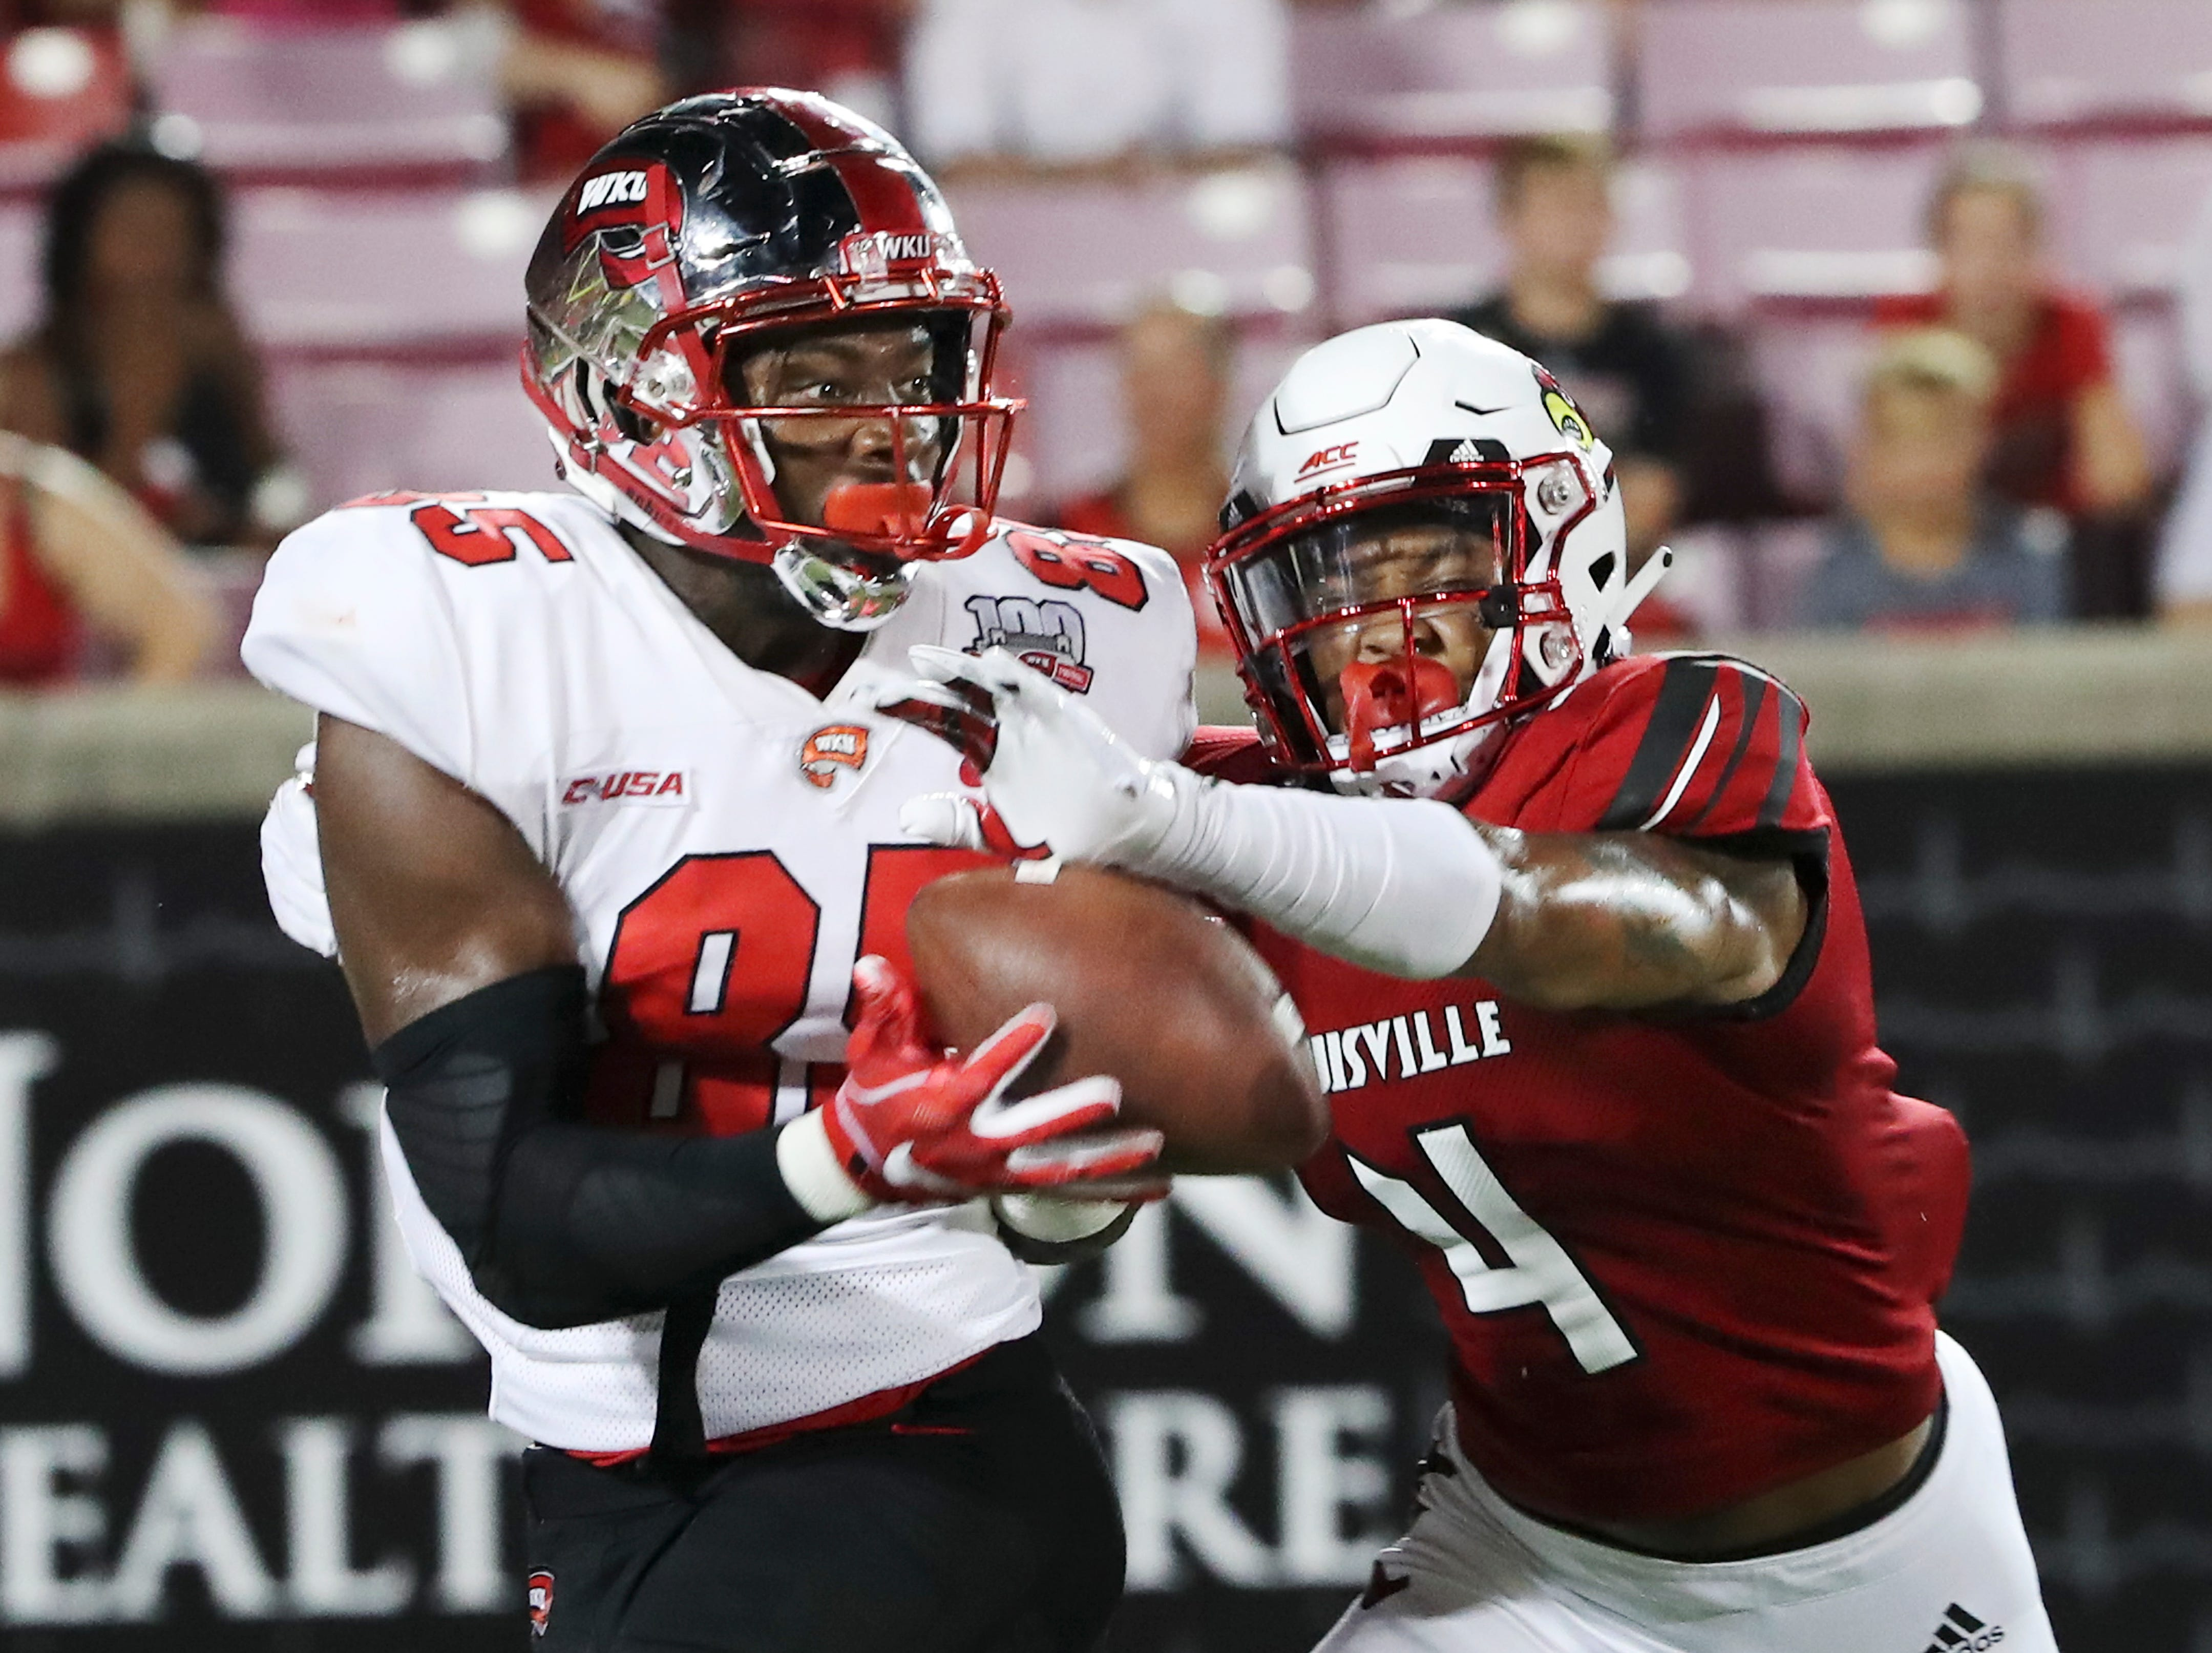 Louisville's TreSean Smith (4) breaks up a pass play in the endzone against WKU's Mik'Quan Deane (85) during their game at Cardinal Stadium.